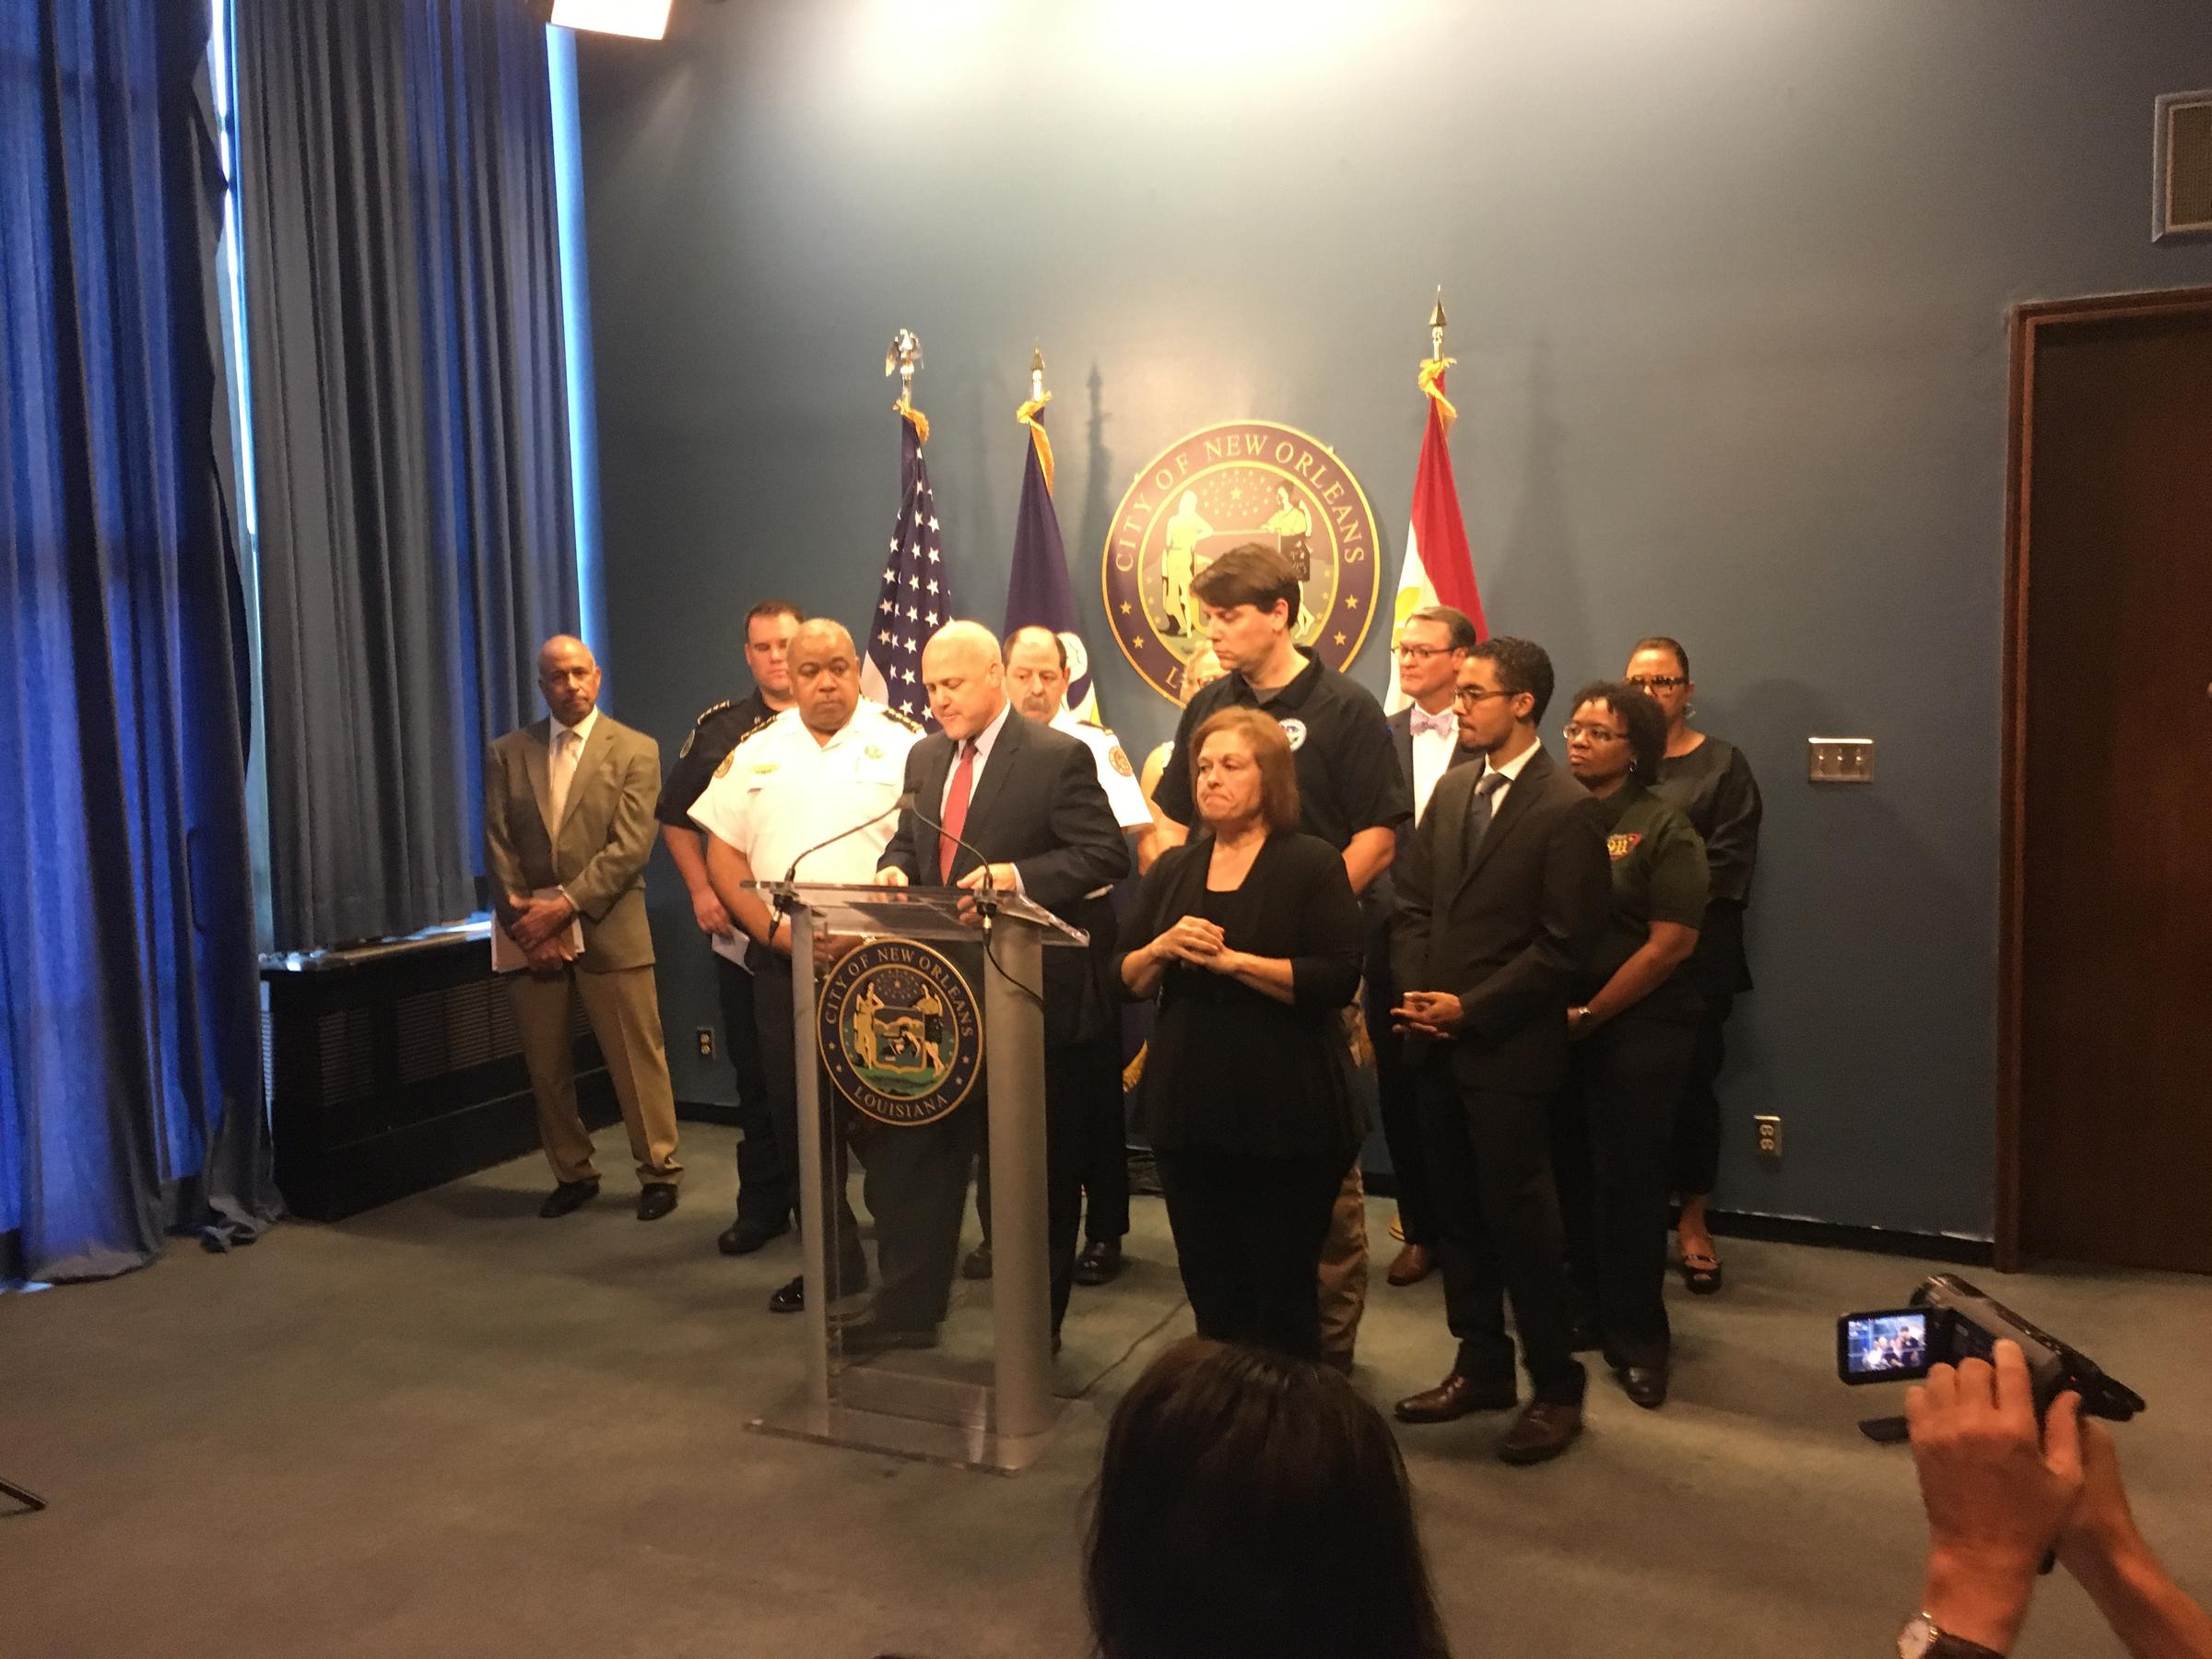 New Orleans mayor says 'no reason to panic' yet